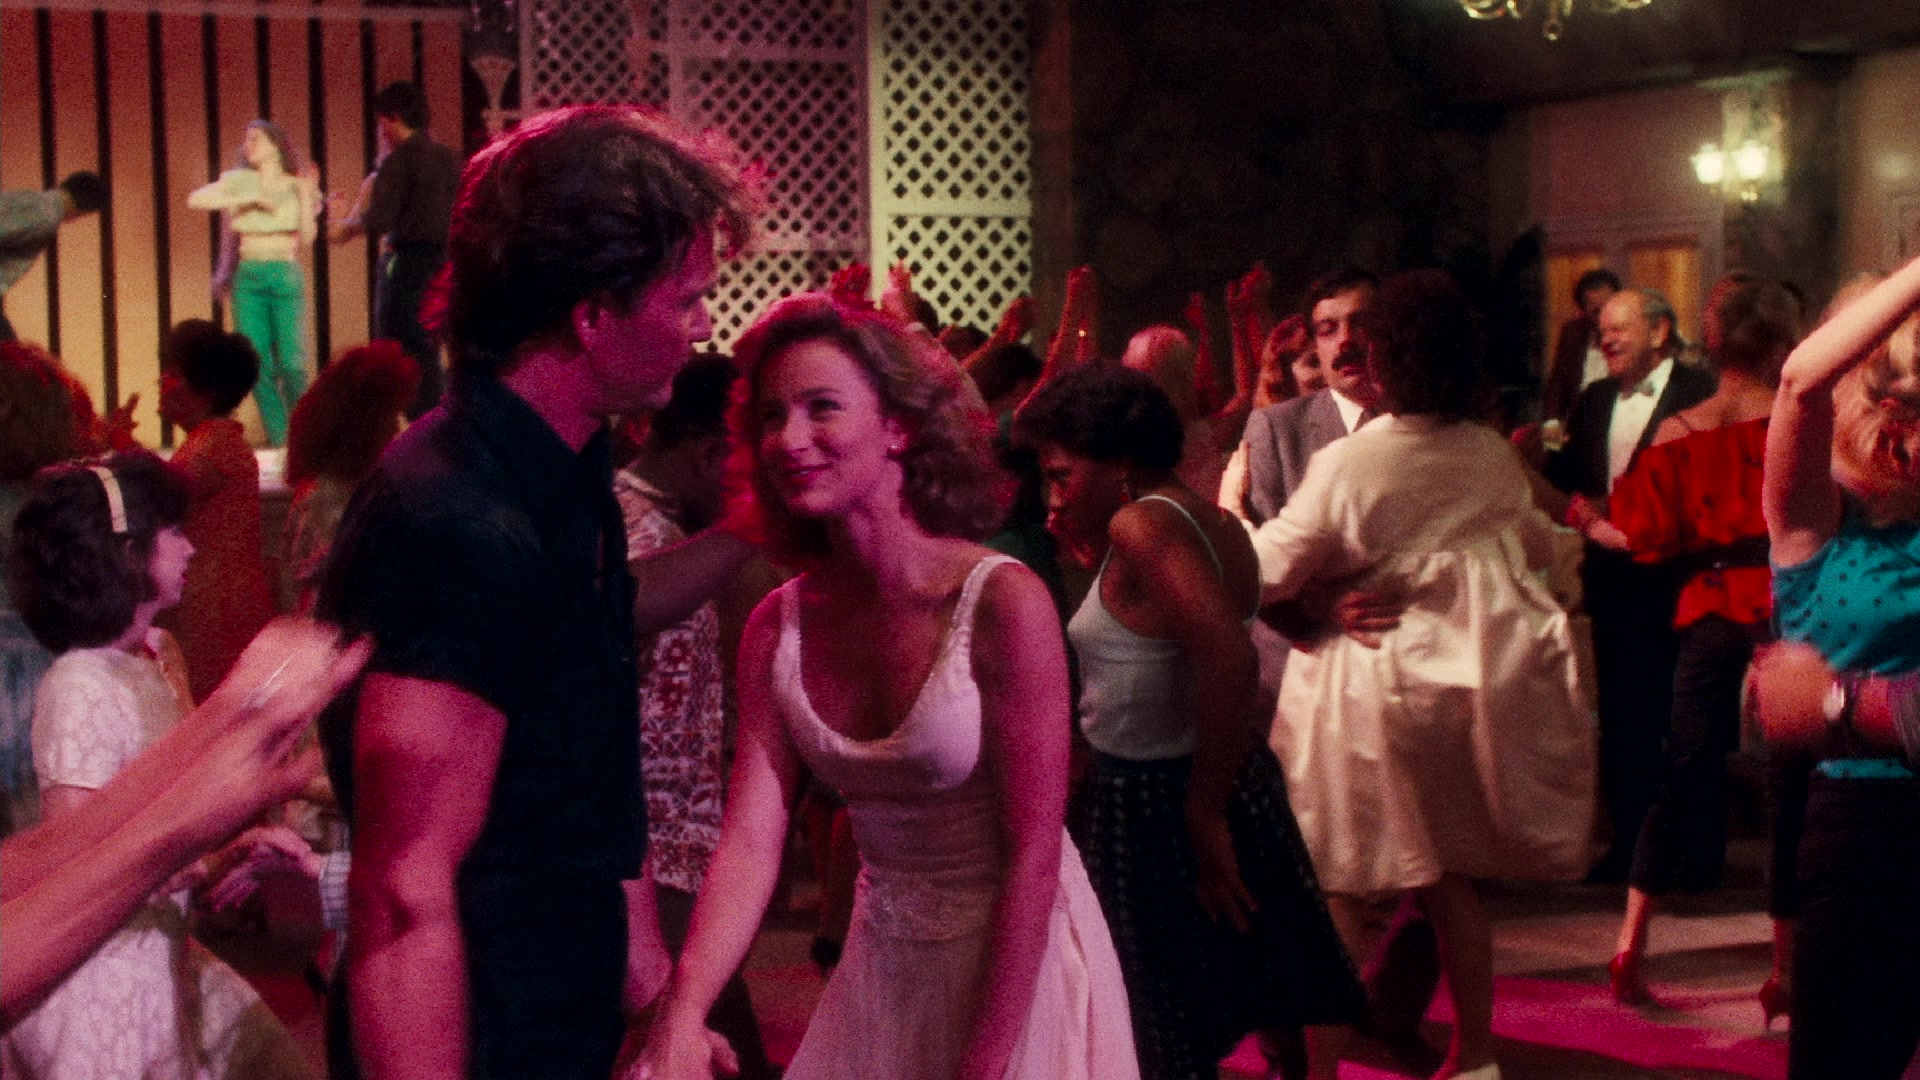 Dirty Dancing Movie Wallpapers 101 images in Collection Page 1 1920x1080